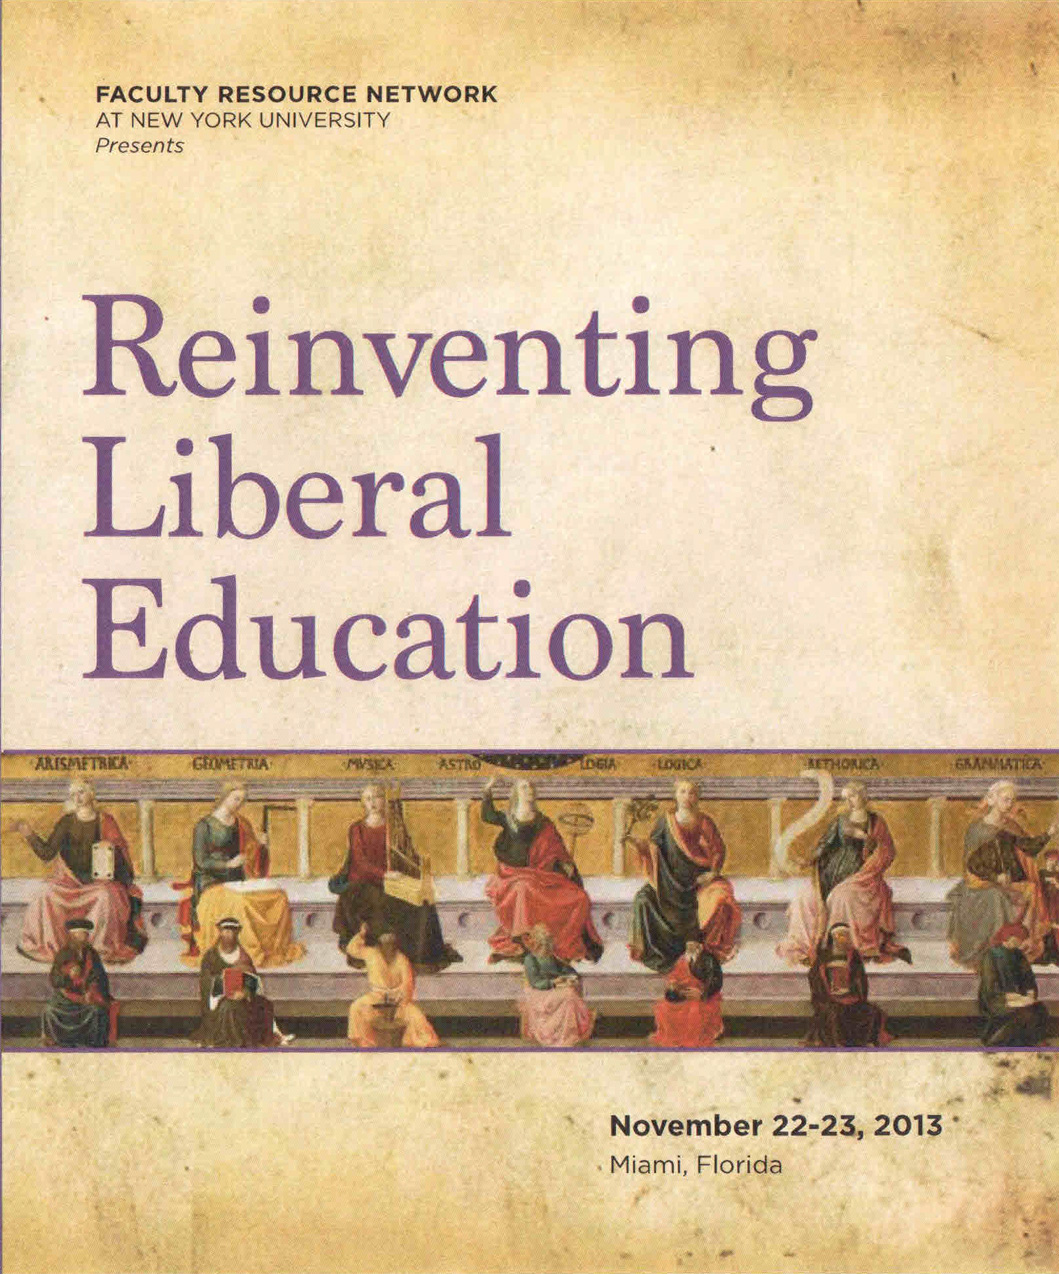 Reinventing Liberal Education